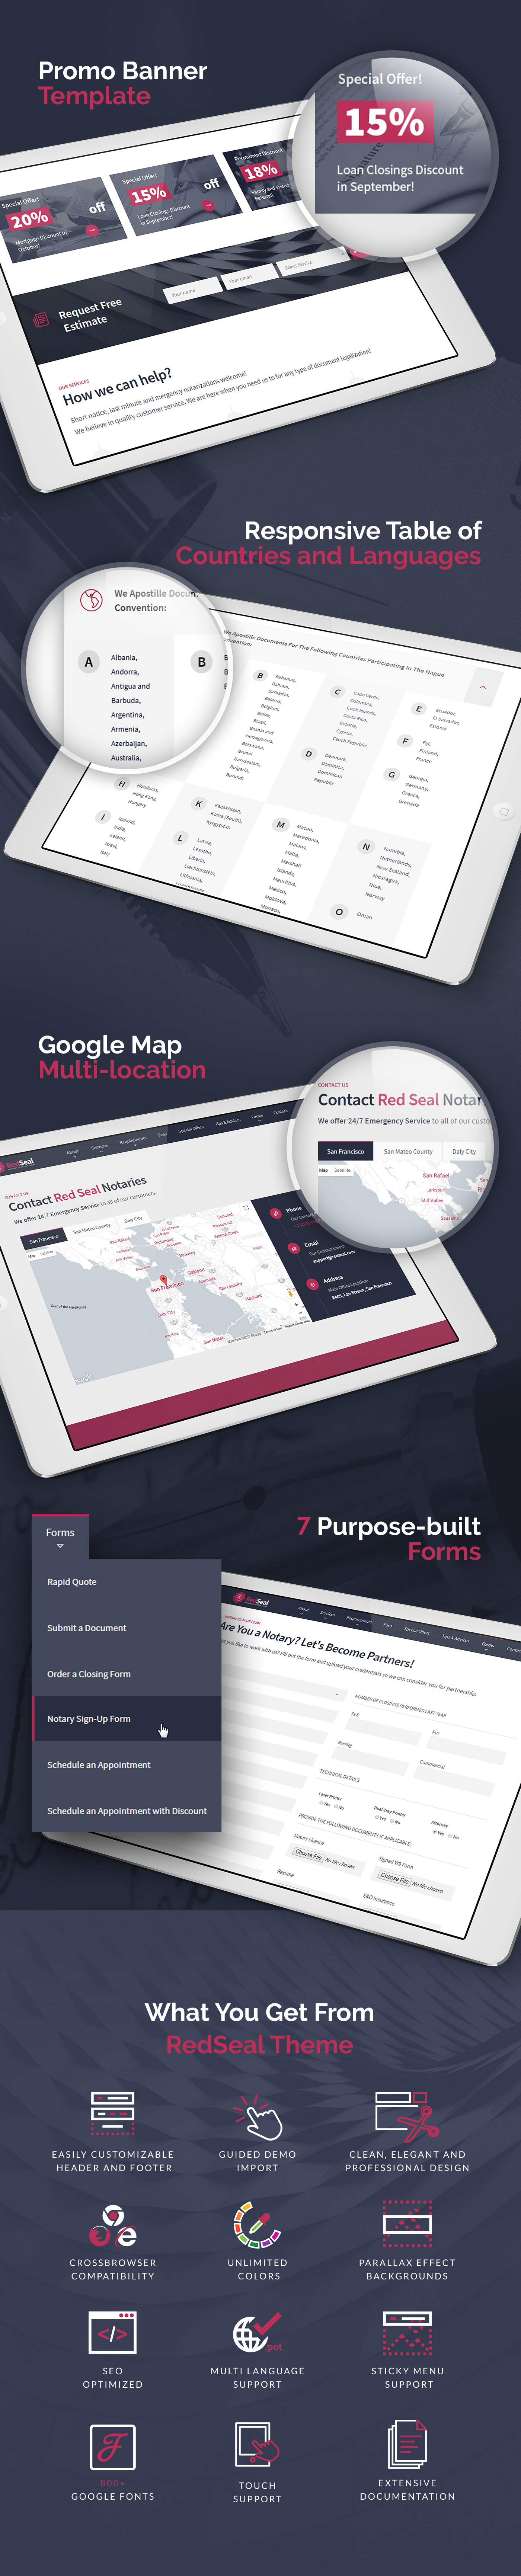 RedSeal Features